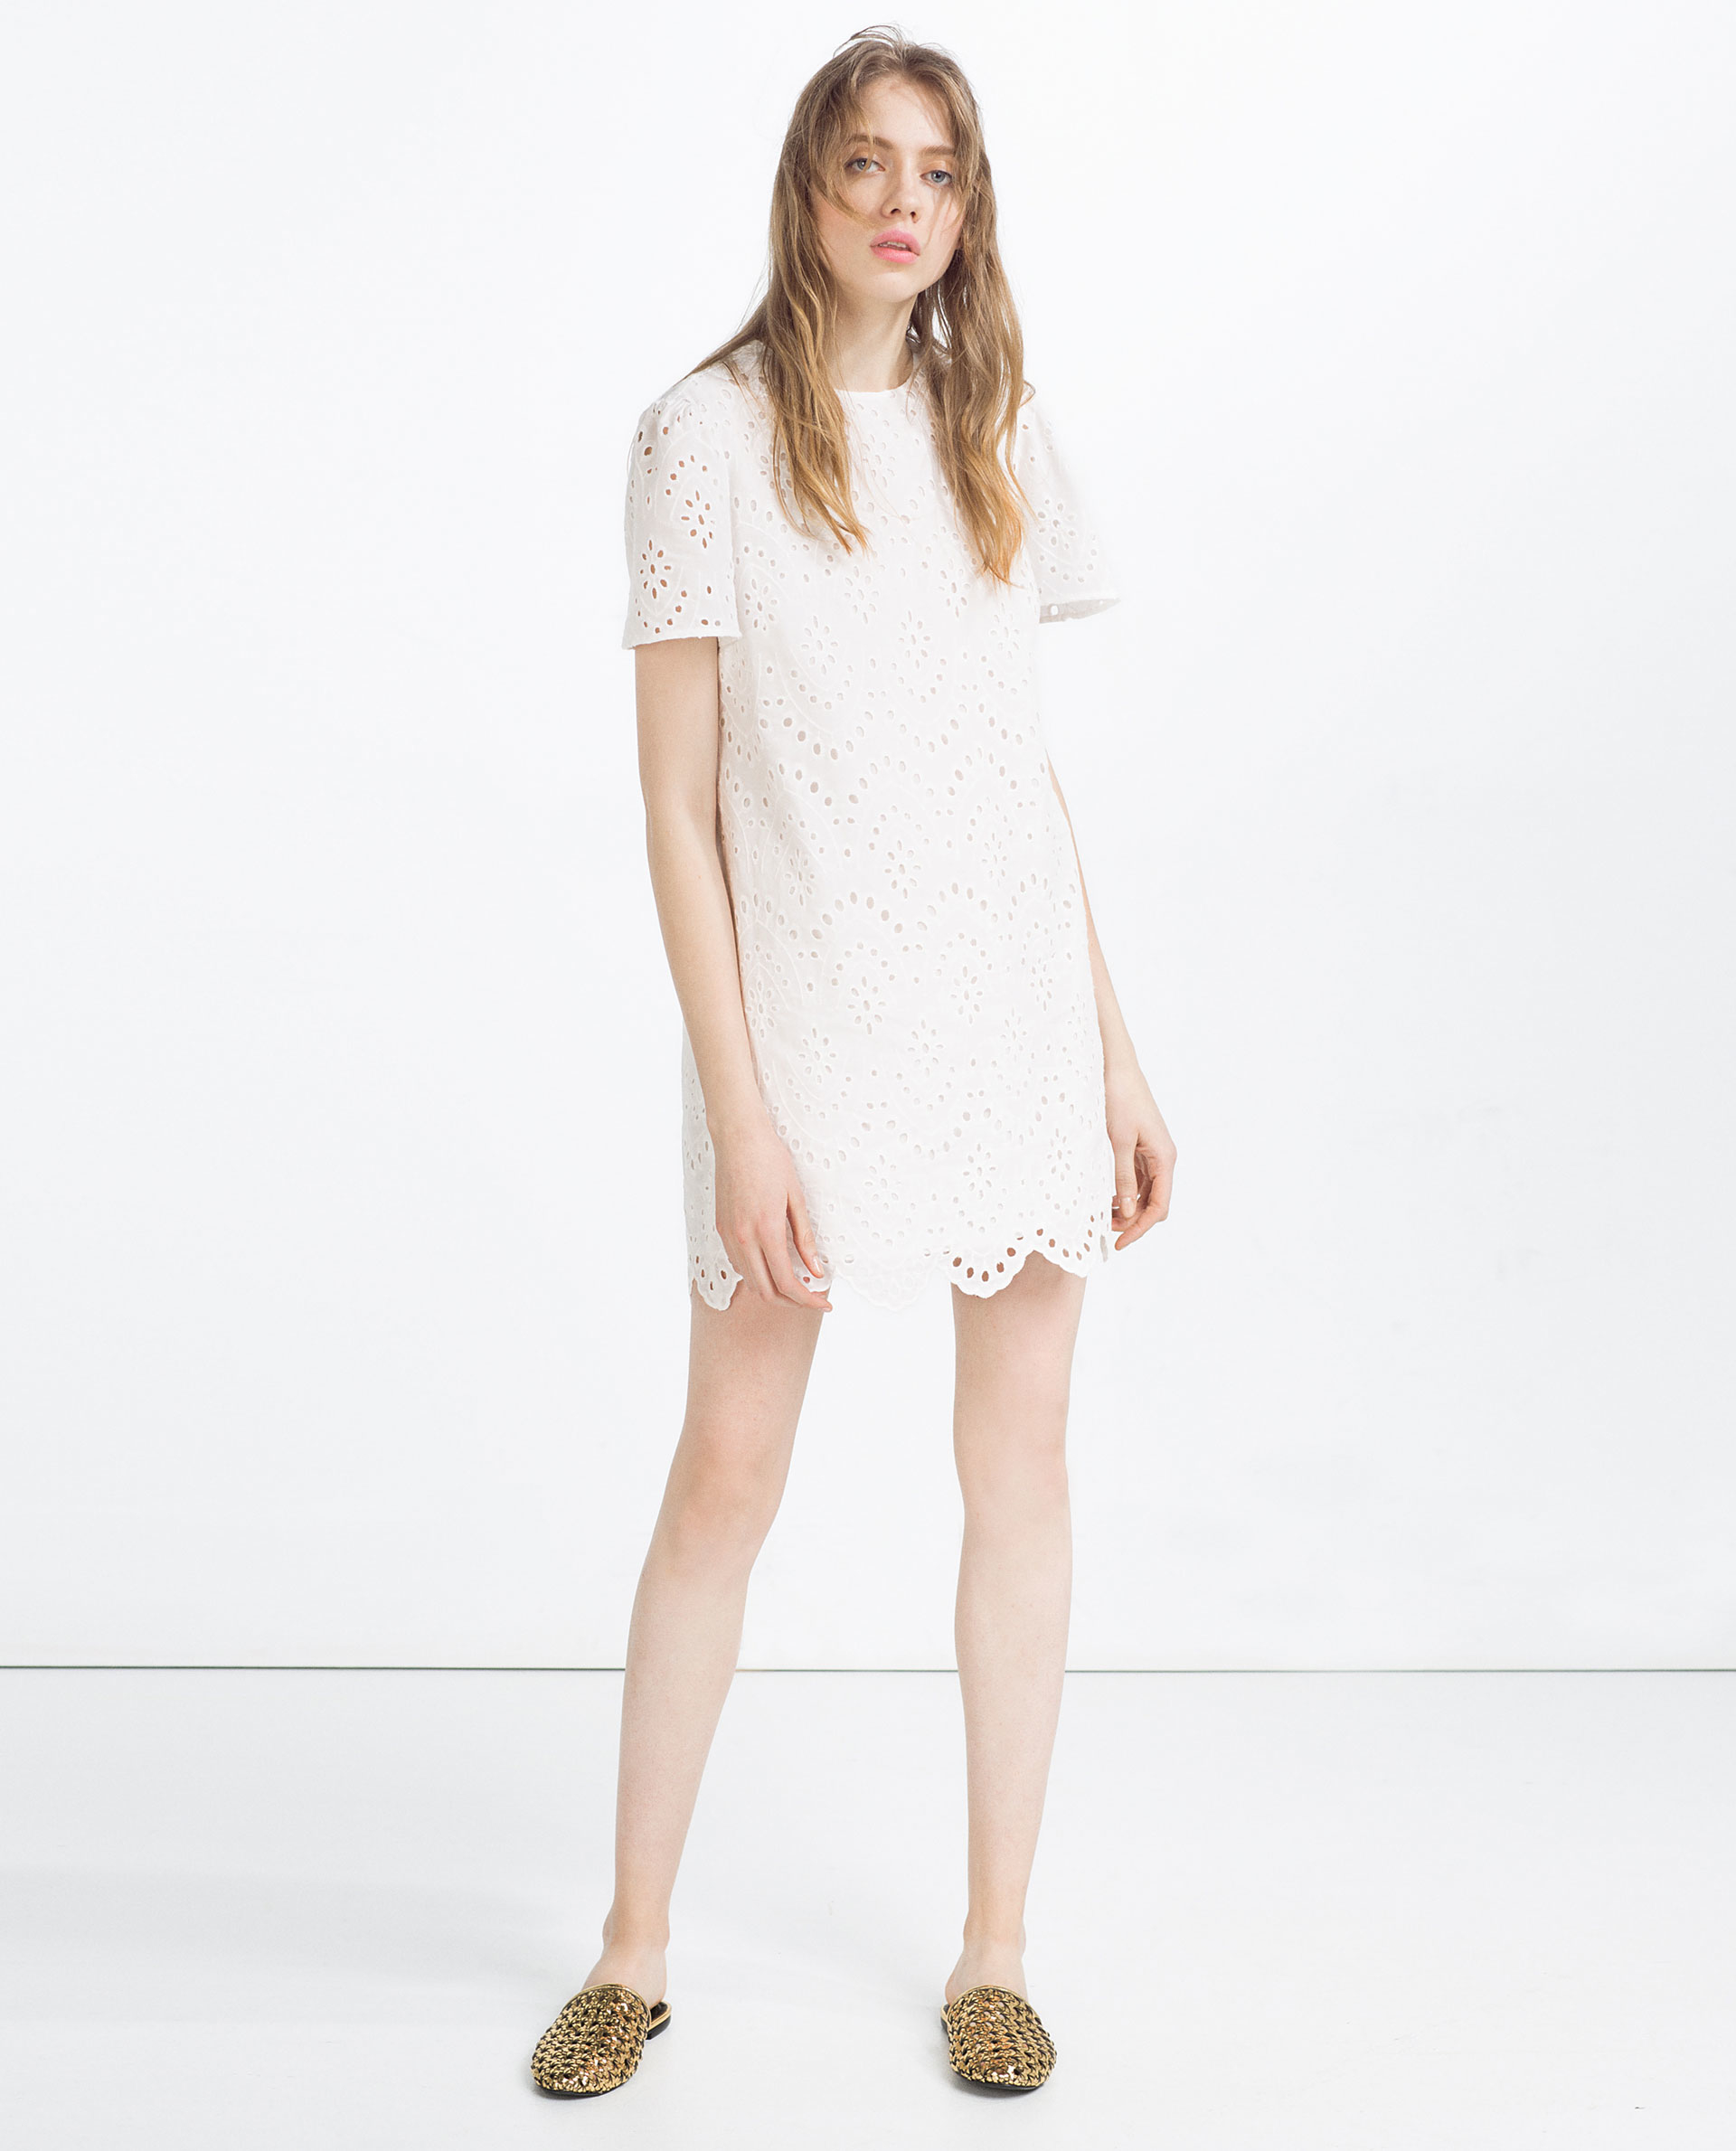 White dress at zara - Zara Embroidered Dress In White Off White Lyst Zara Embroidered Dress In White Off White